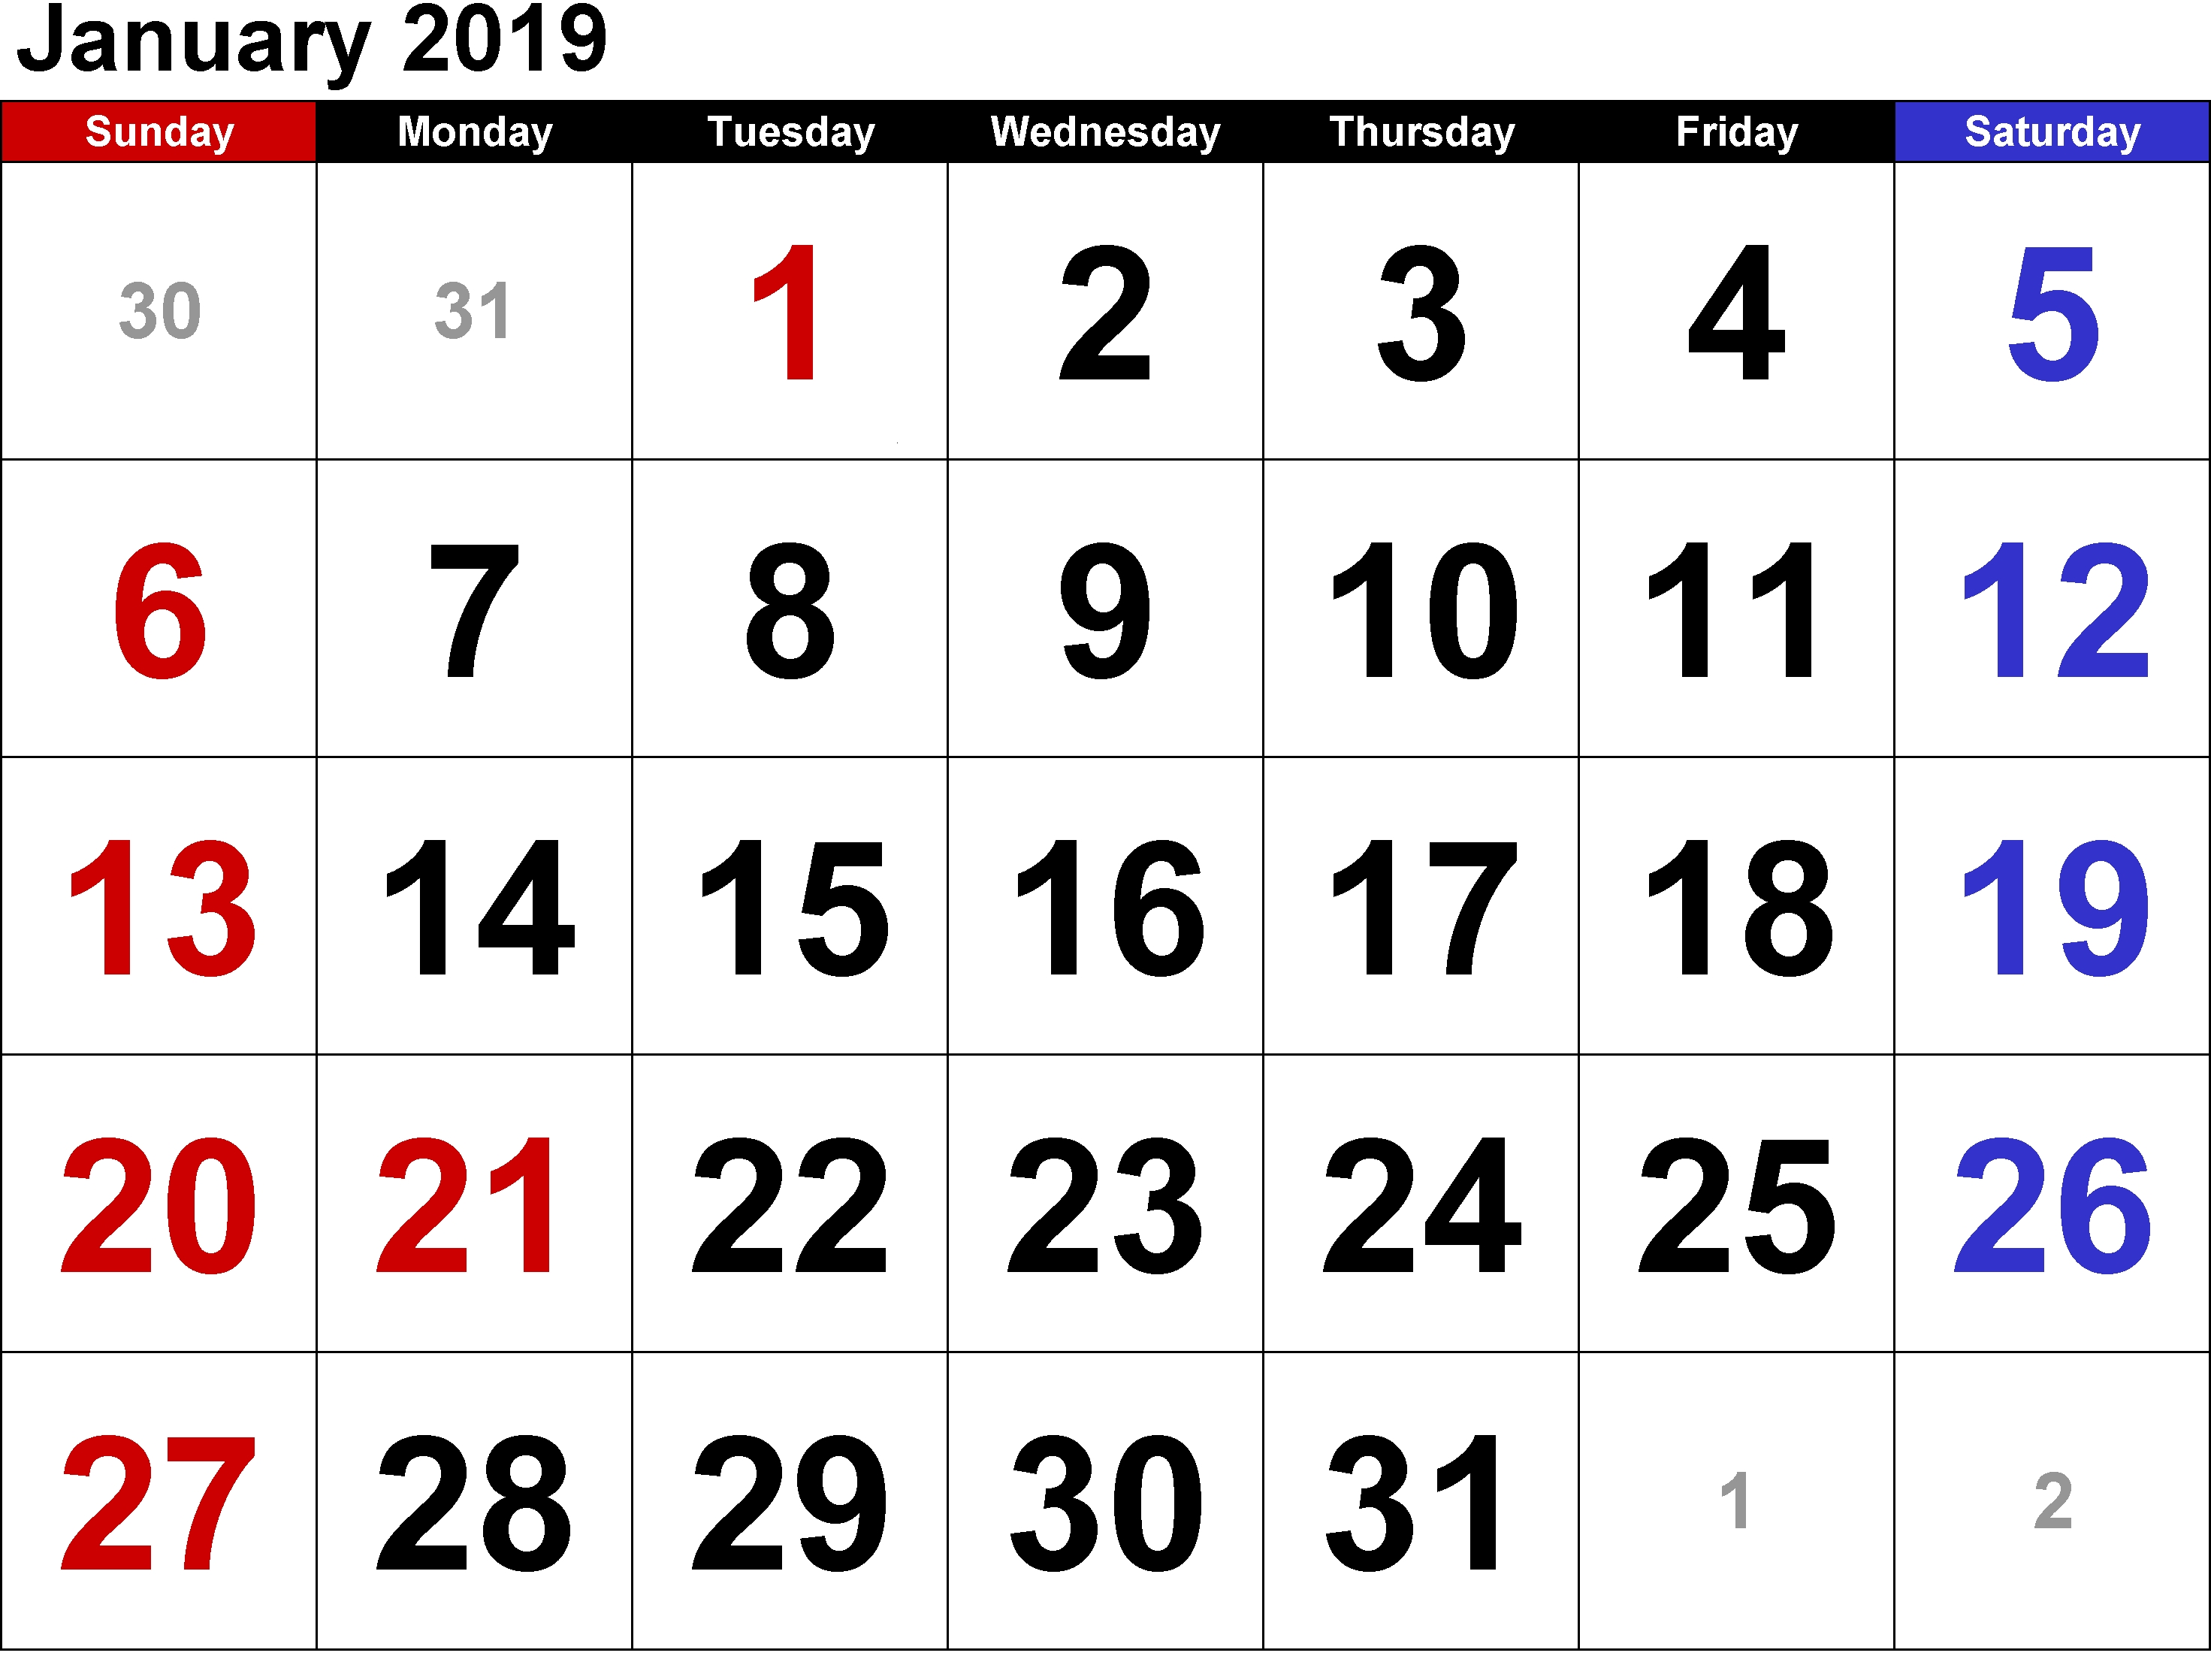 January 2019 Calendar Template A4 Sheet Printout-January 2020 Calendar Philippines